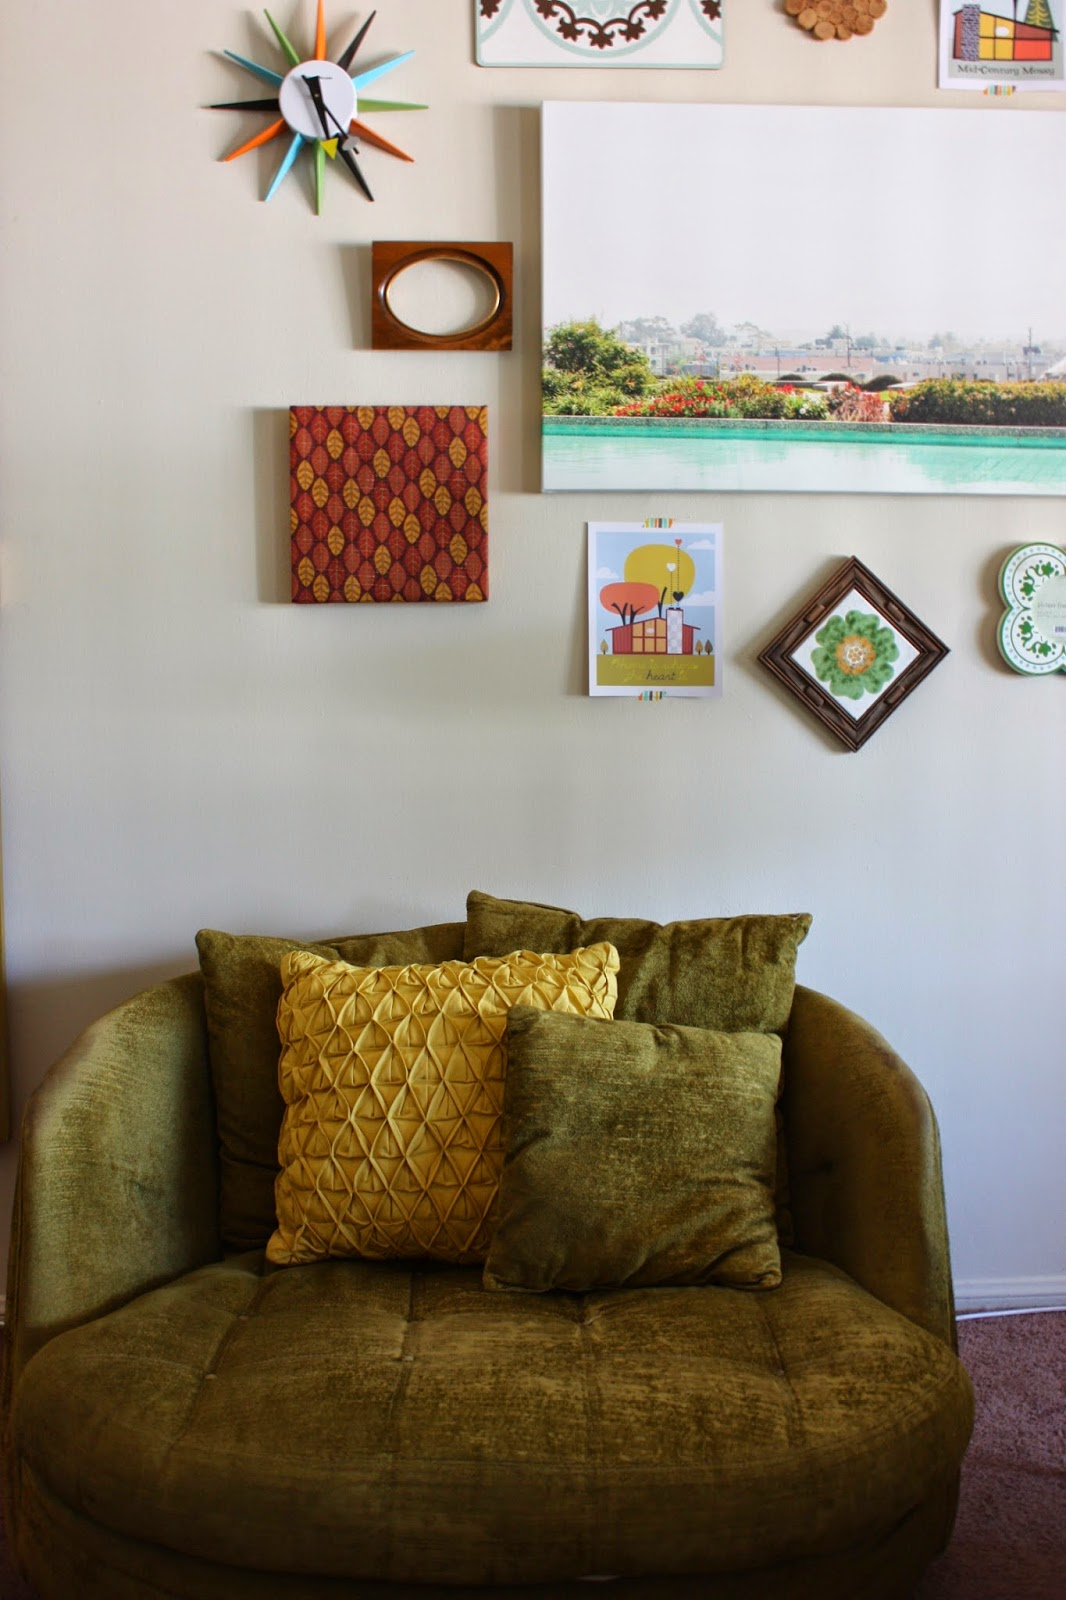 Diary Of A Thrift Store Addict: Home Decor Thrifting